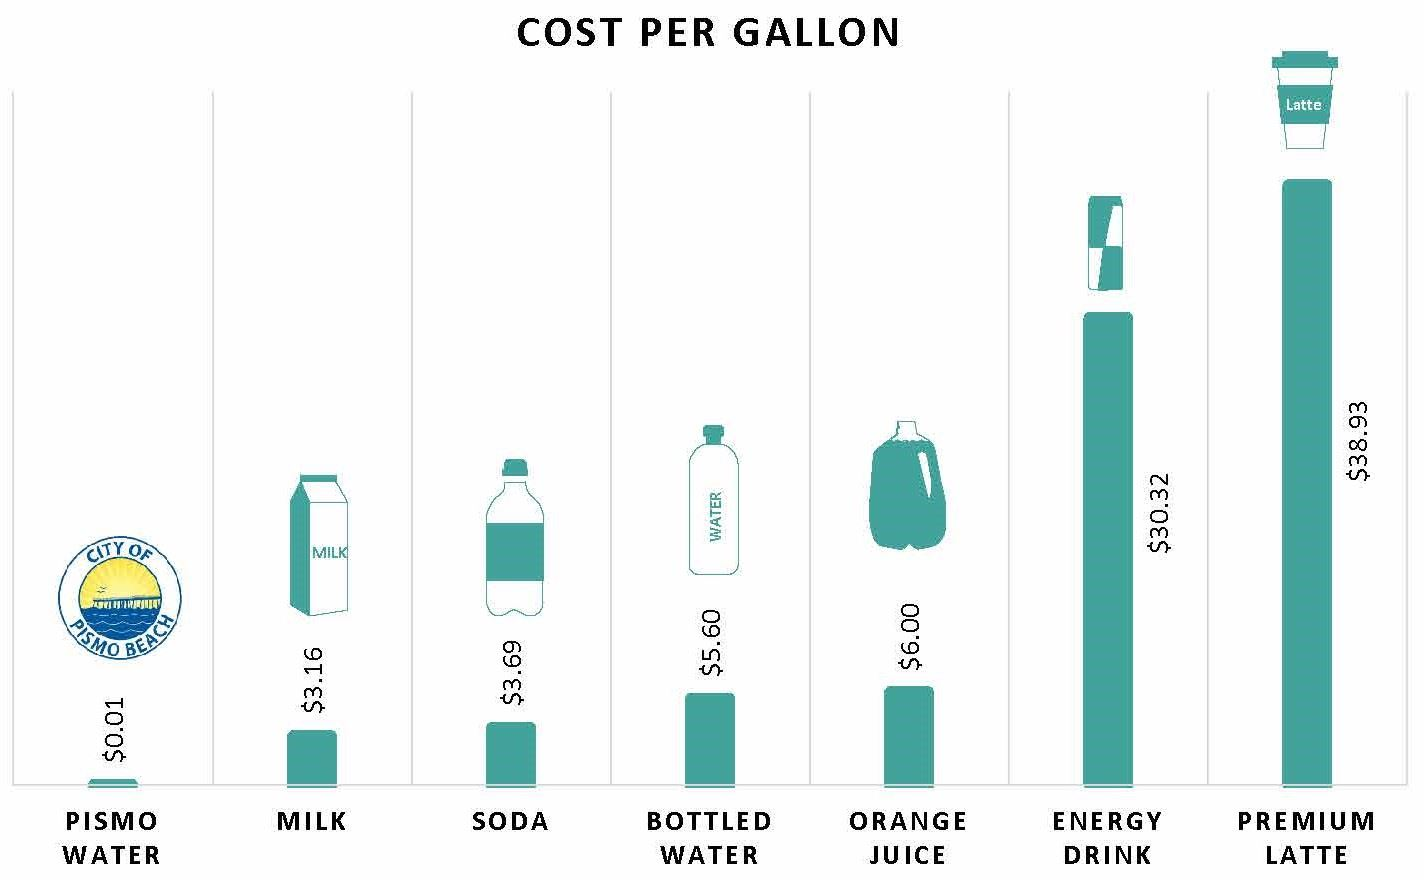 1 Gallon of Water Comparison